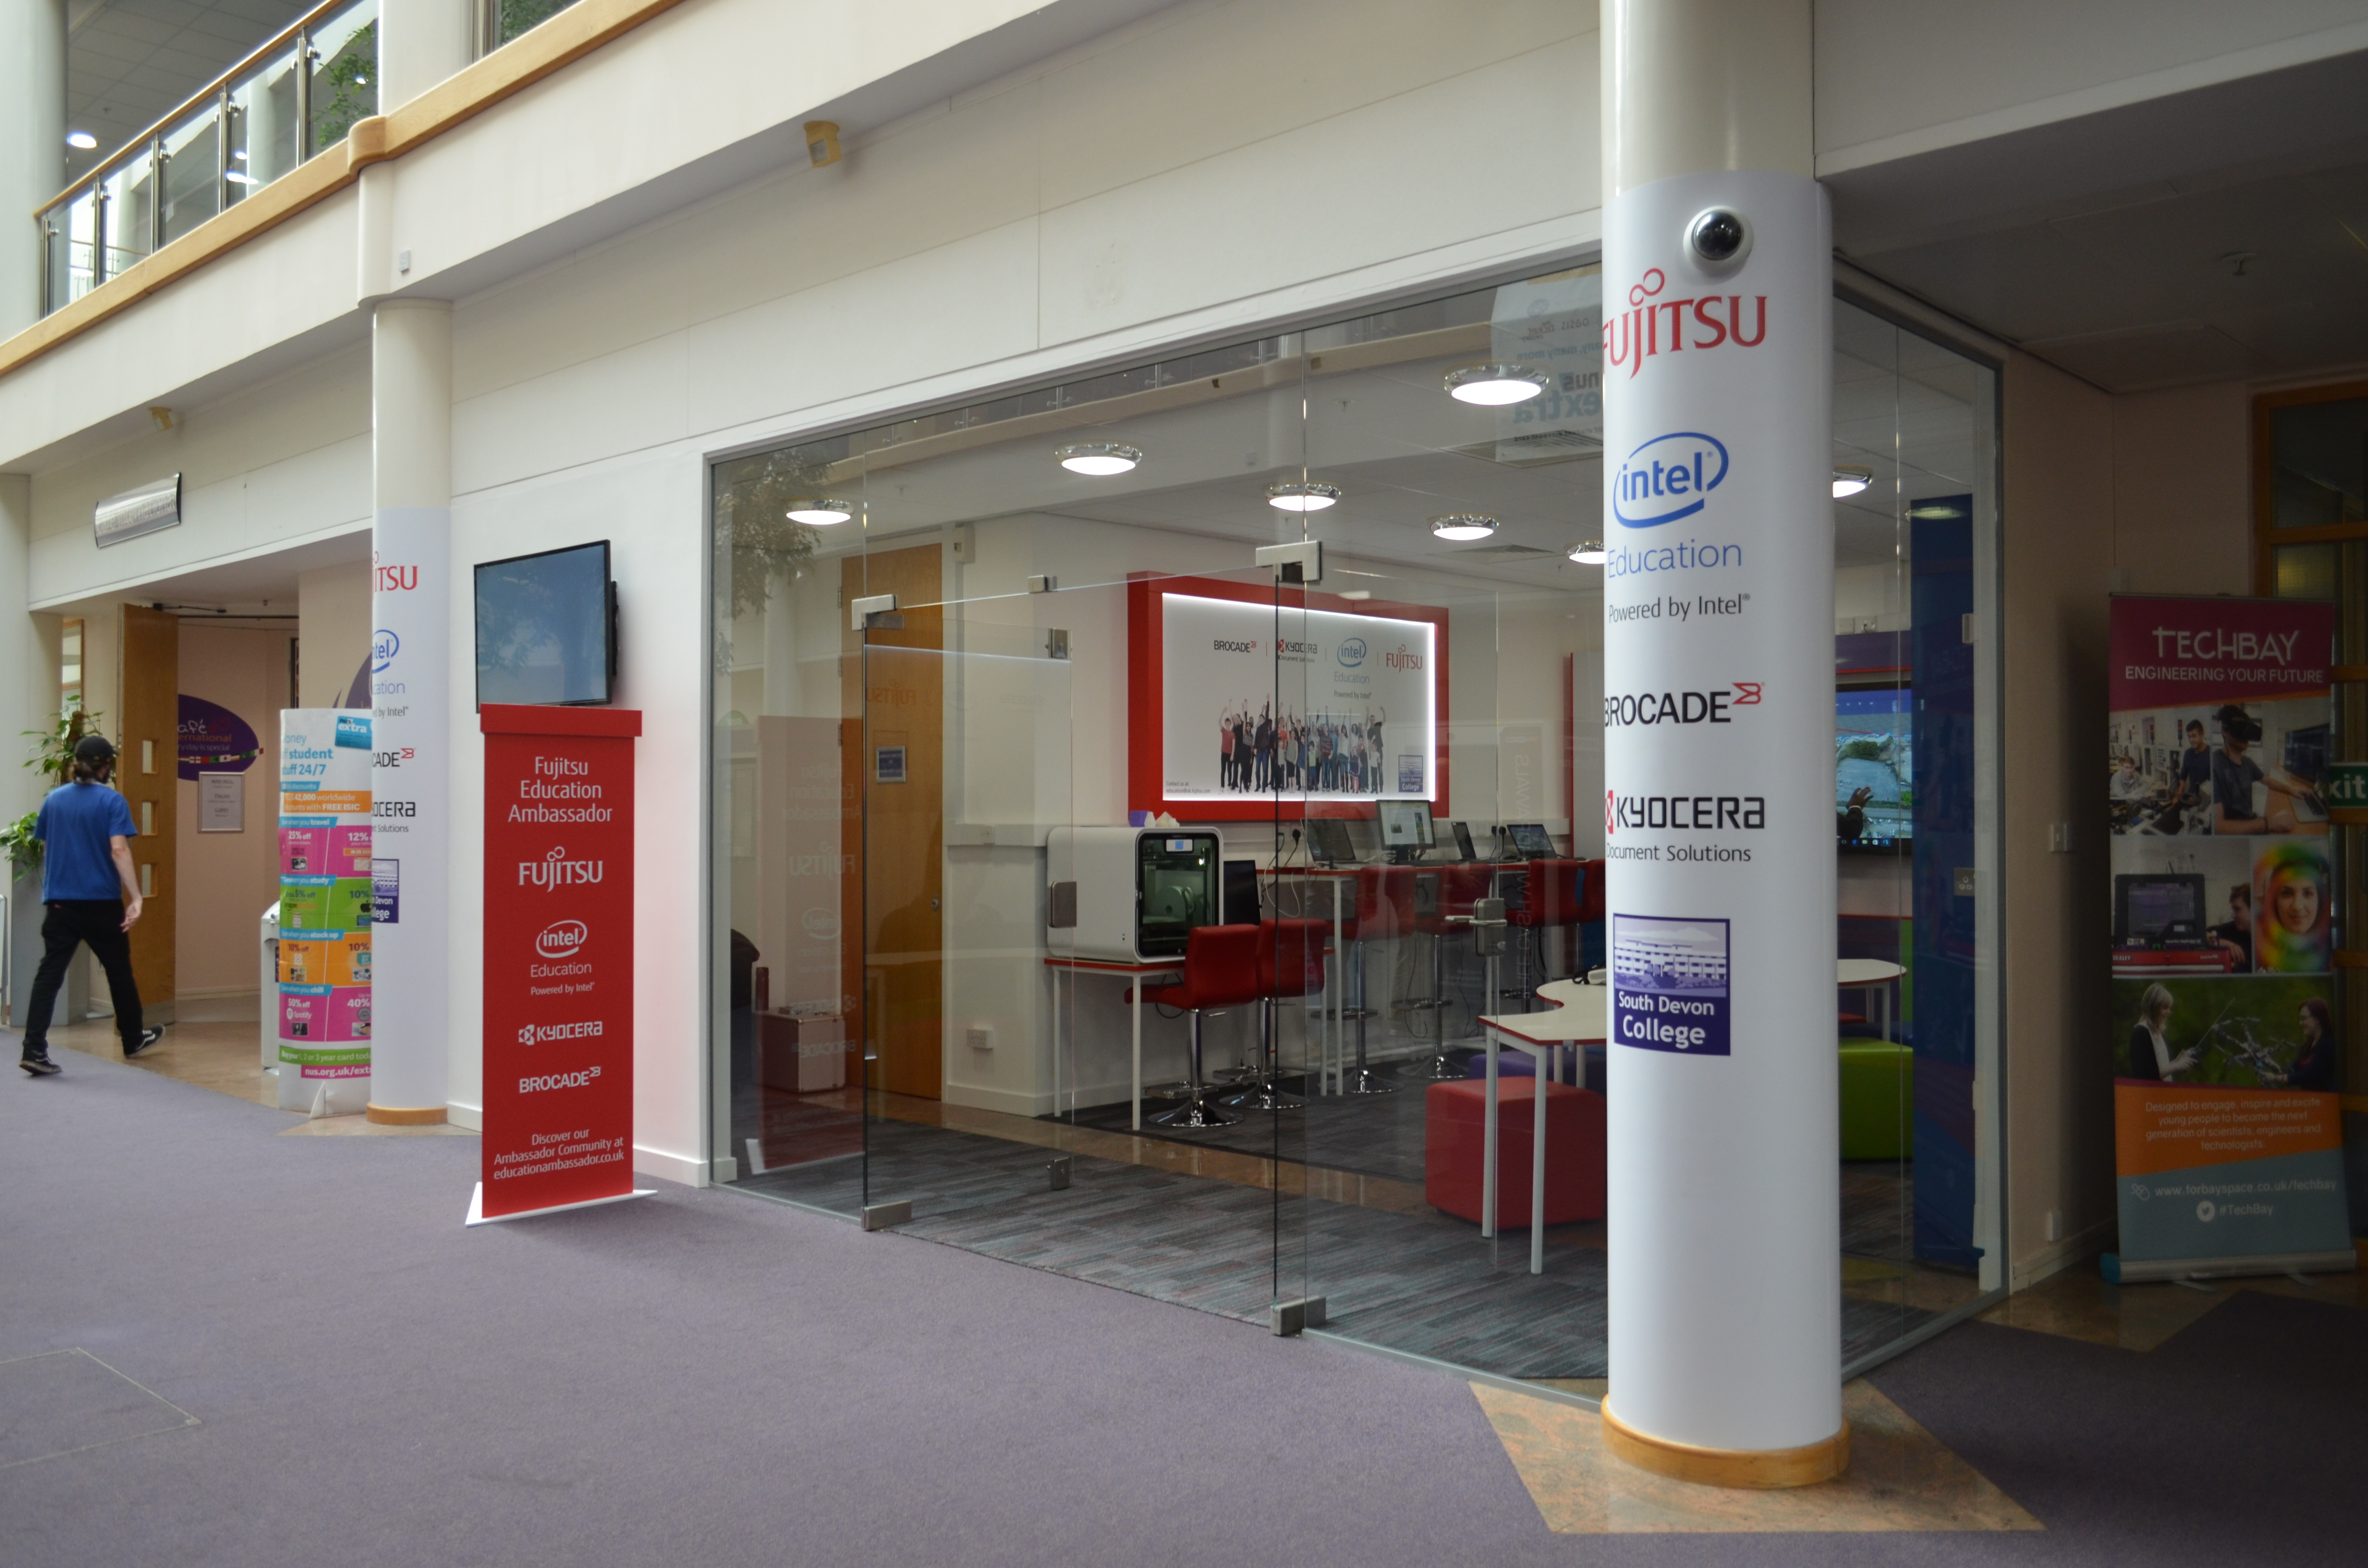 Fujitsu Digital Innovation Hub